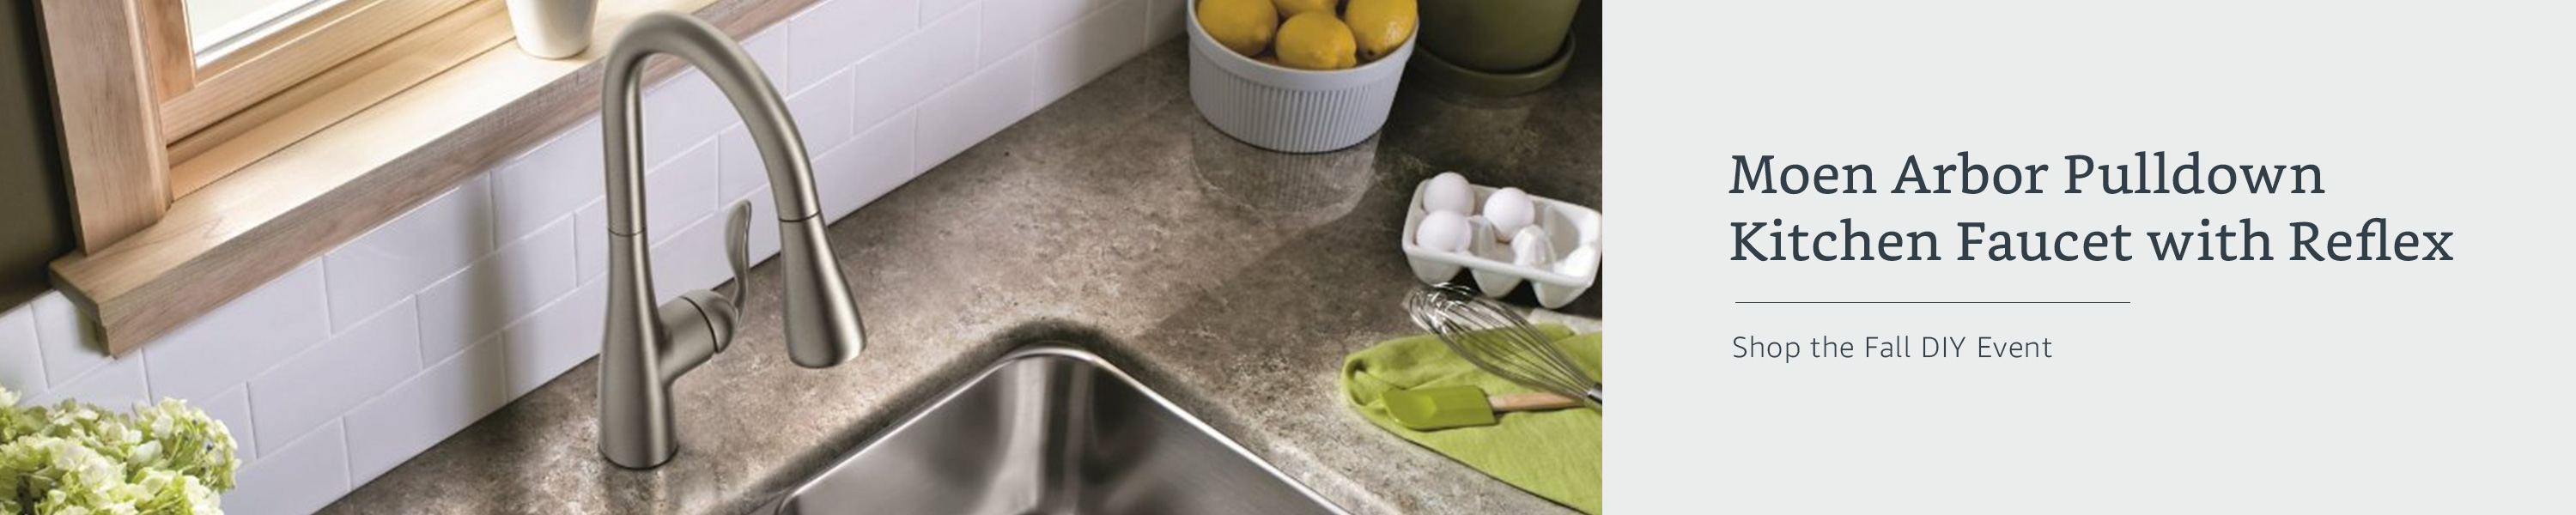 Moen Arbor Pulldown Kitchen Faucet with Reflex. Shop the Fall DIY Event.